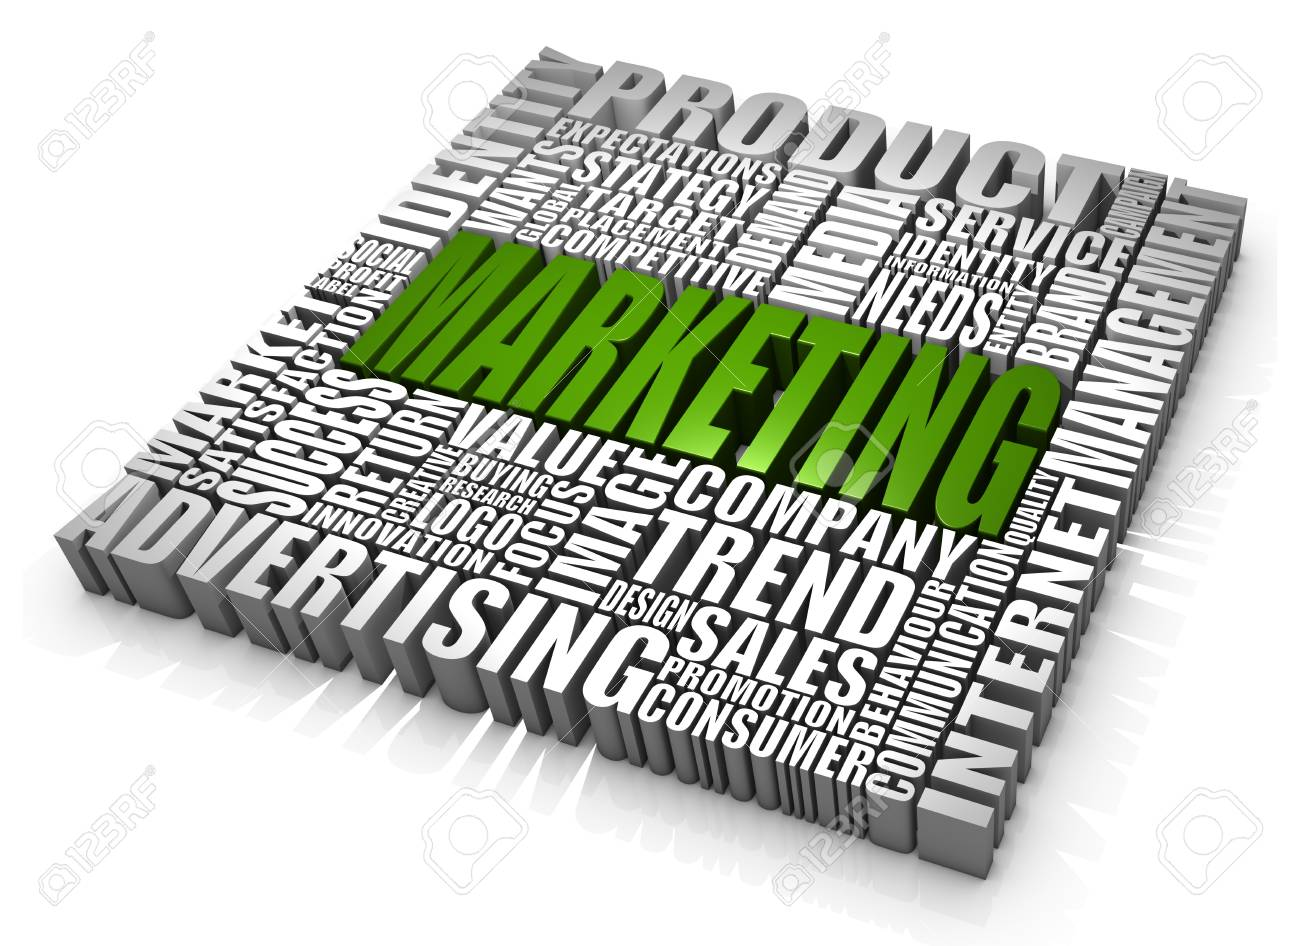 Group of Marketing related words. Part of a series of business concepts. Stock Photo - 7156959